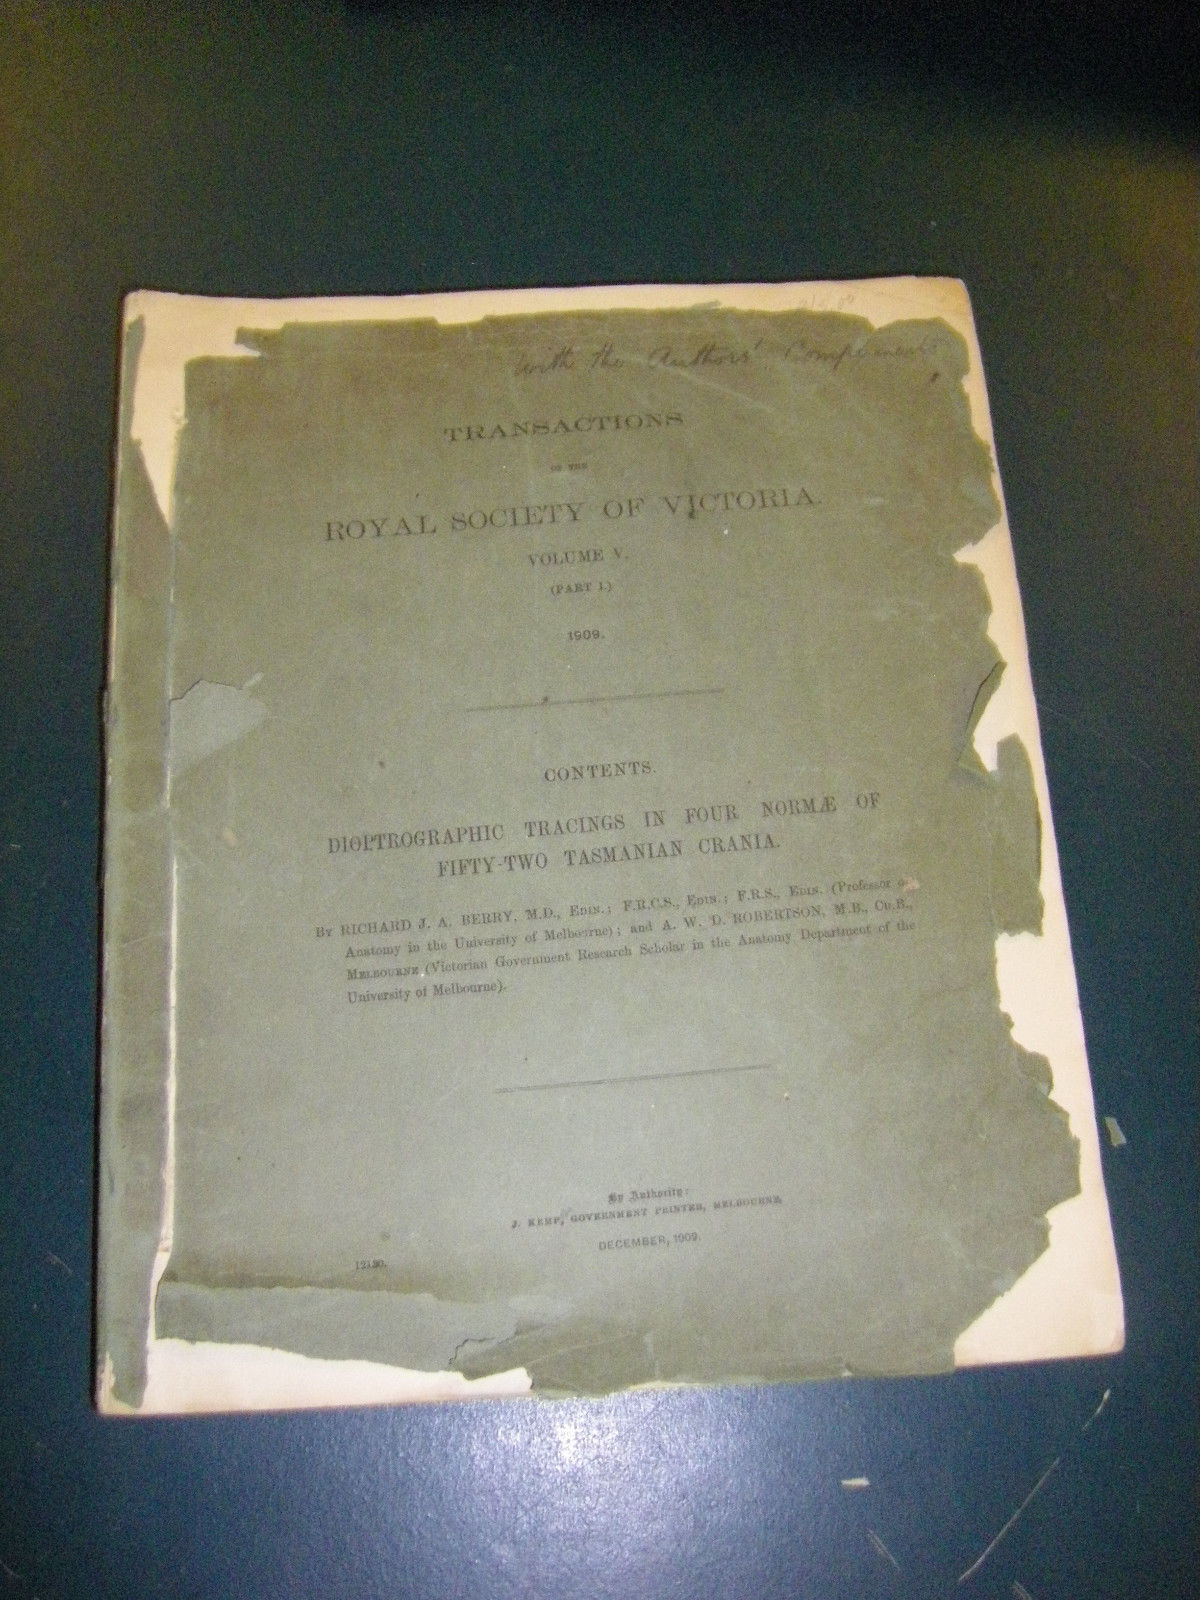 Transactions of the Royal Society of Victoria Vol V part 1 1909